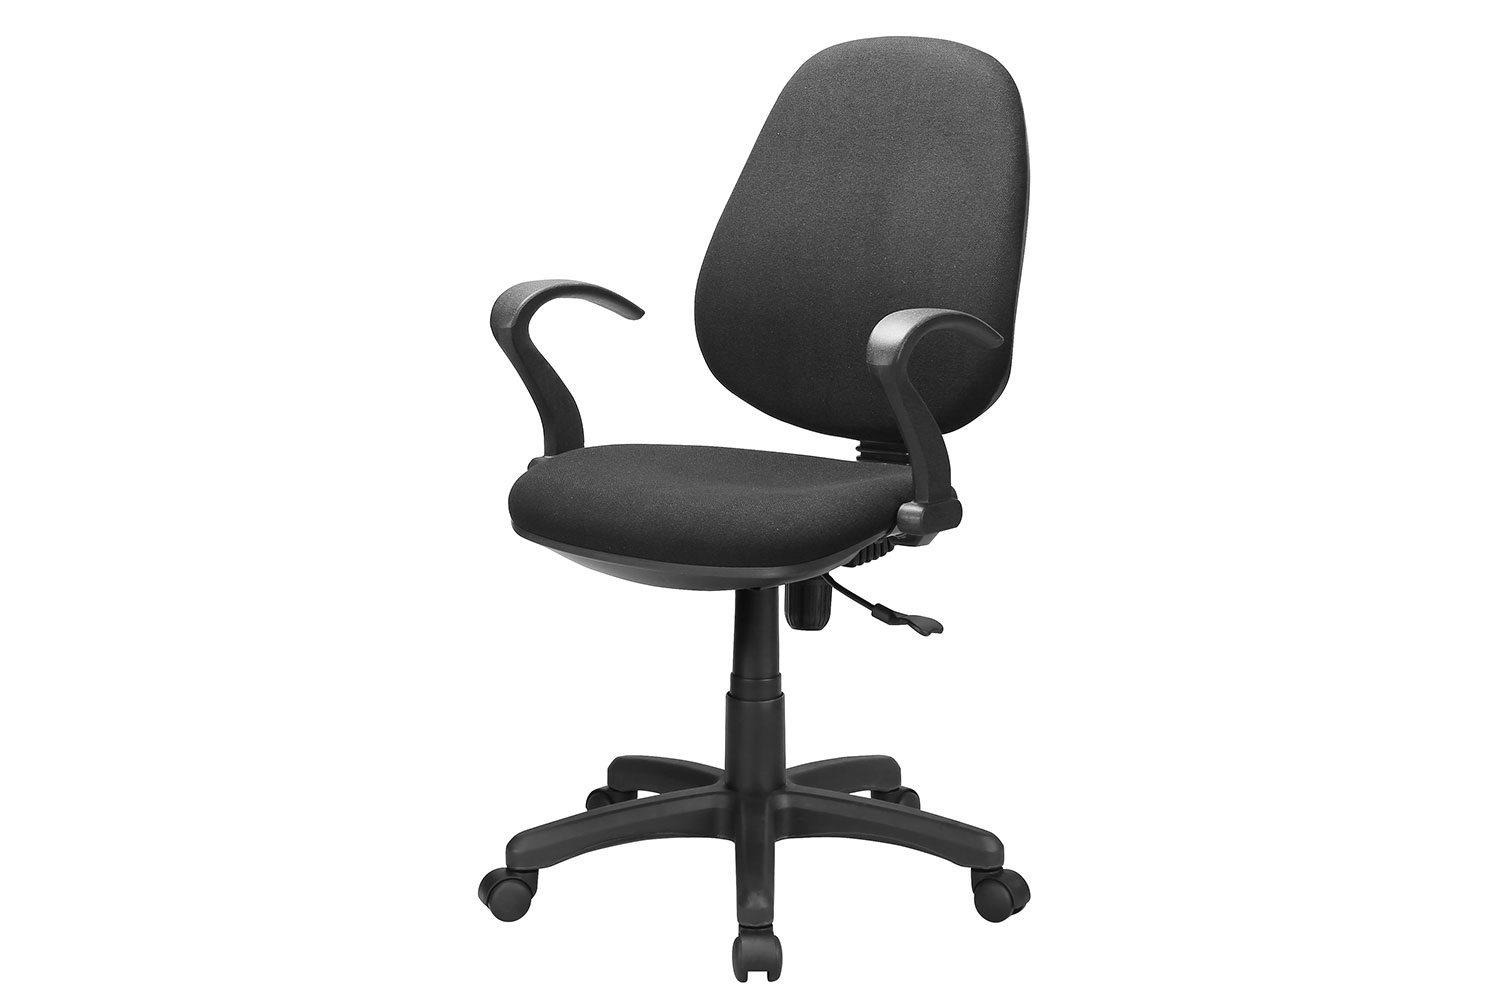 office chair penang grey upholstered chairs harvey norman new zealand ozzy